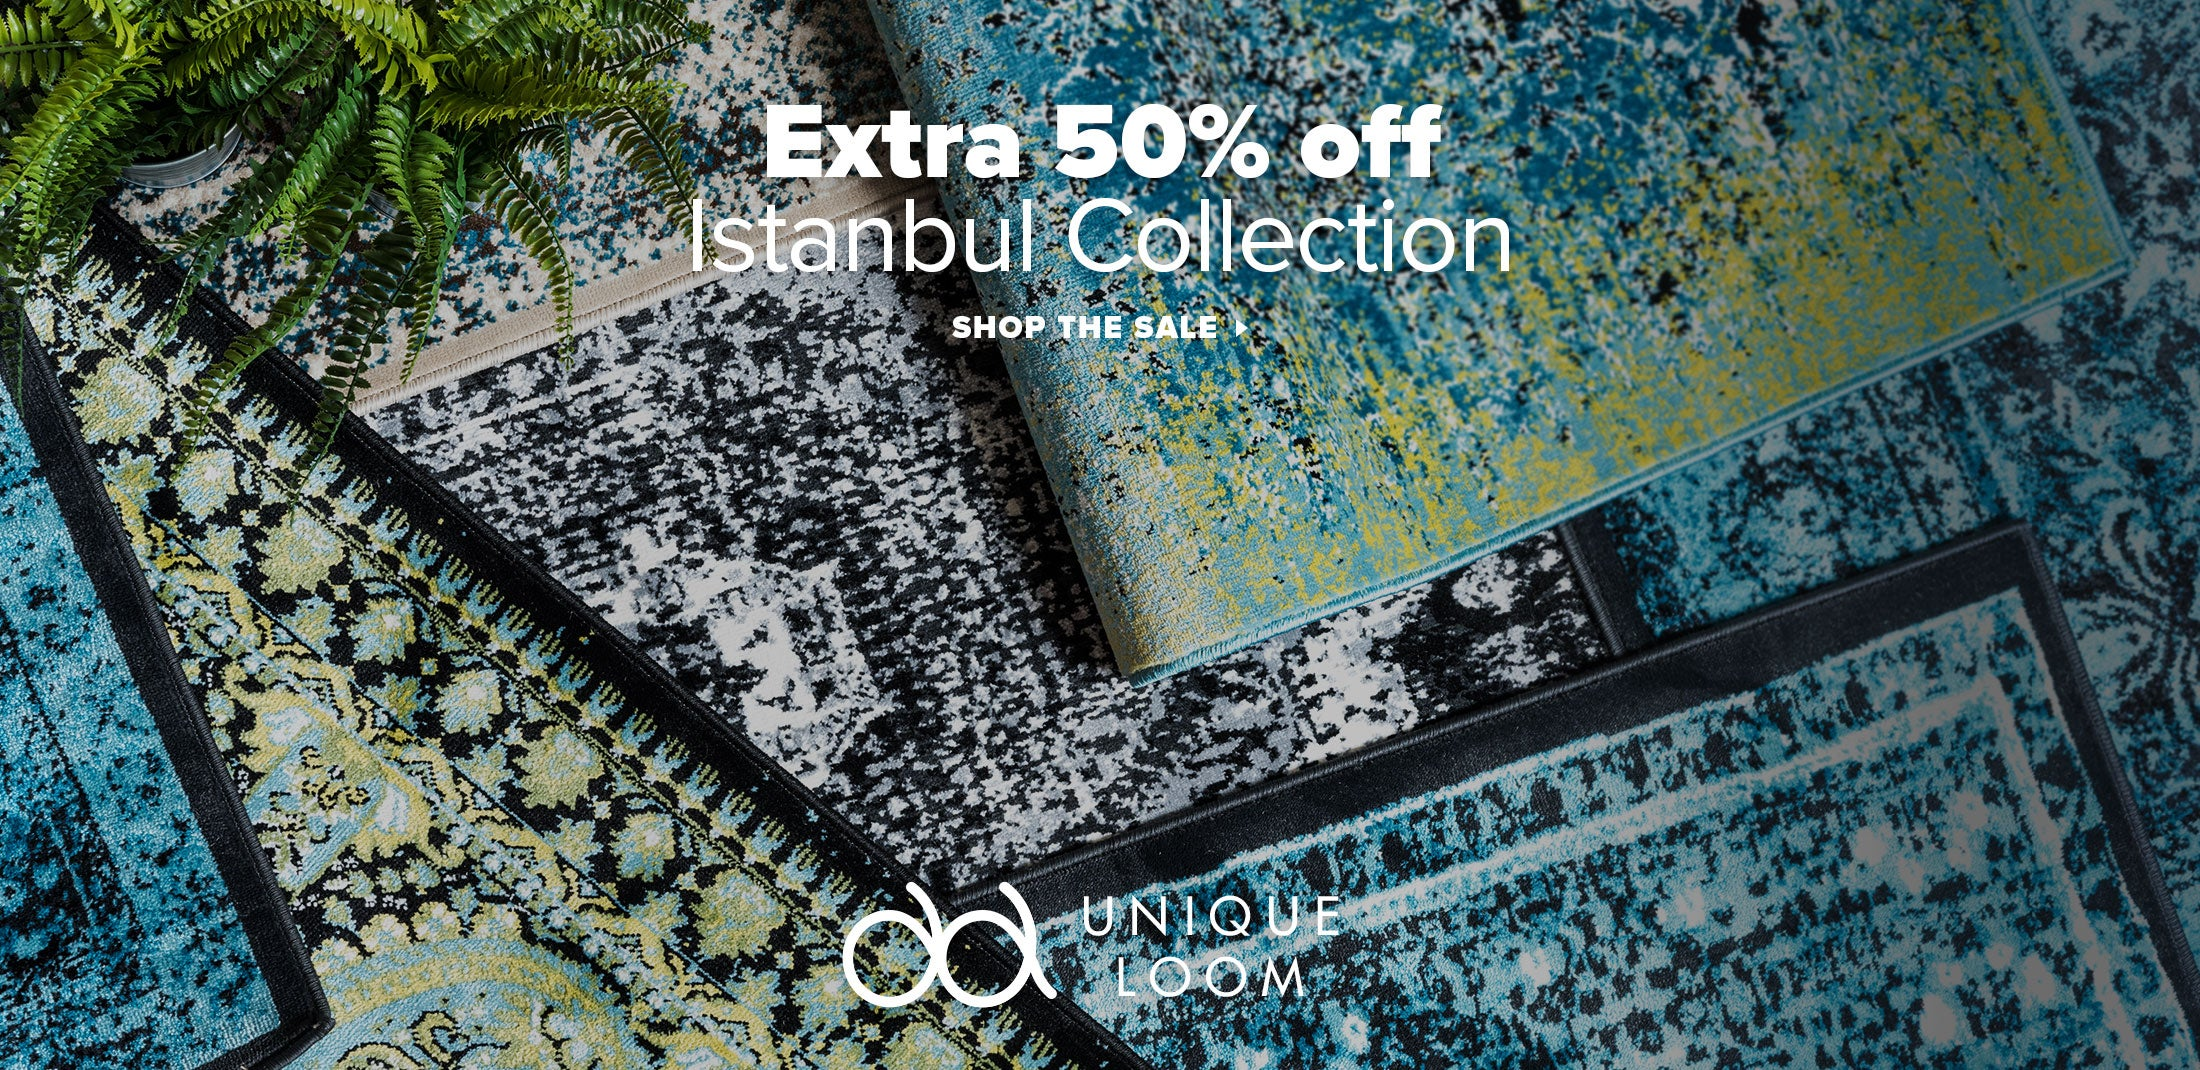 50% off Istanbul Collection image